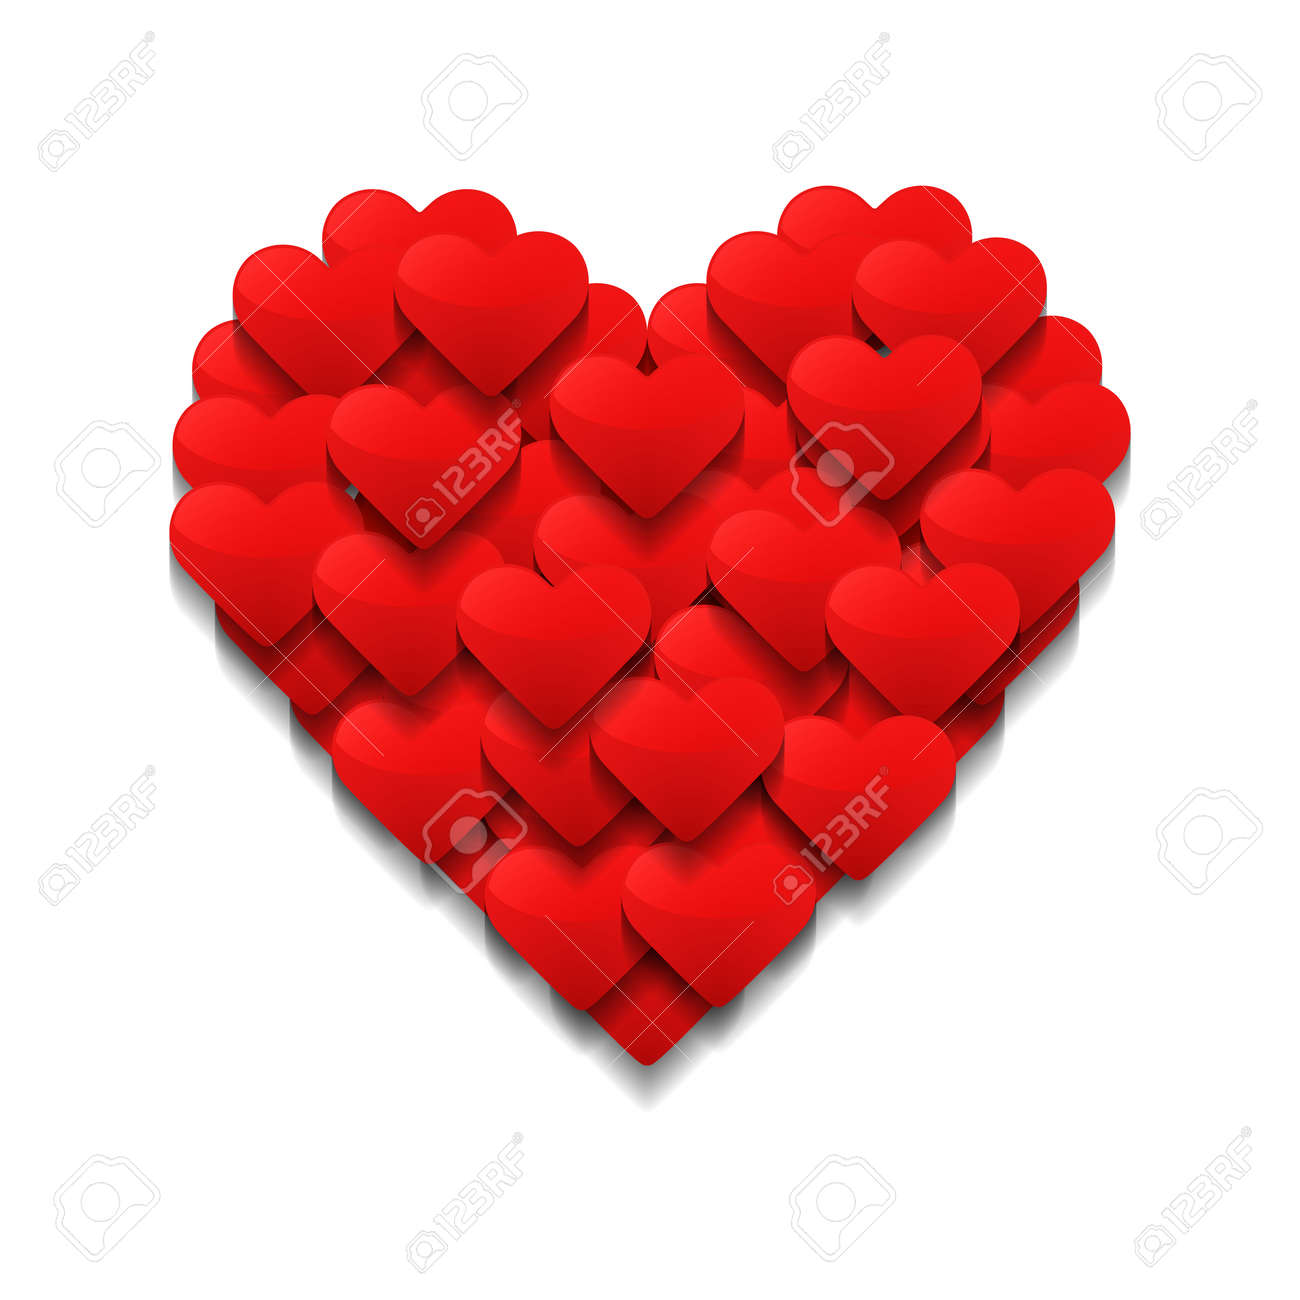 big heart stock photos royalty free big heart images rh 123rf com picture of a big red heart picture of a big valentine heart